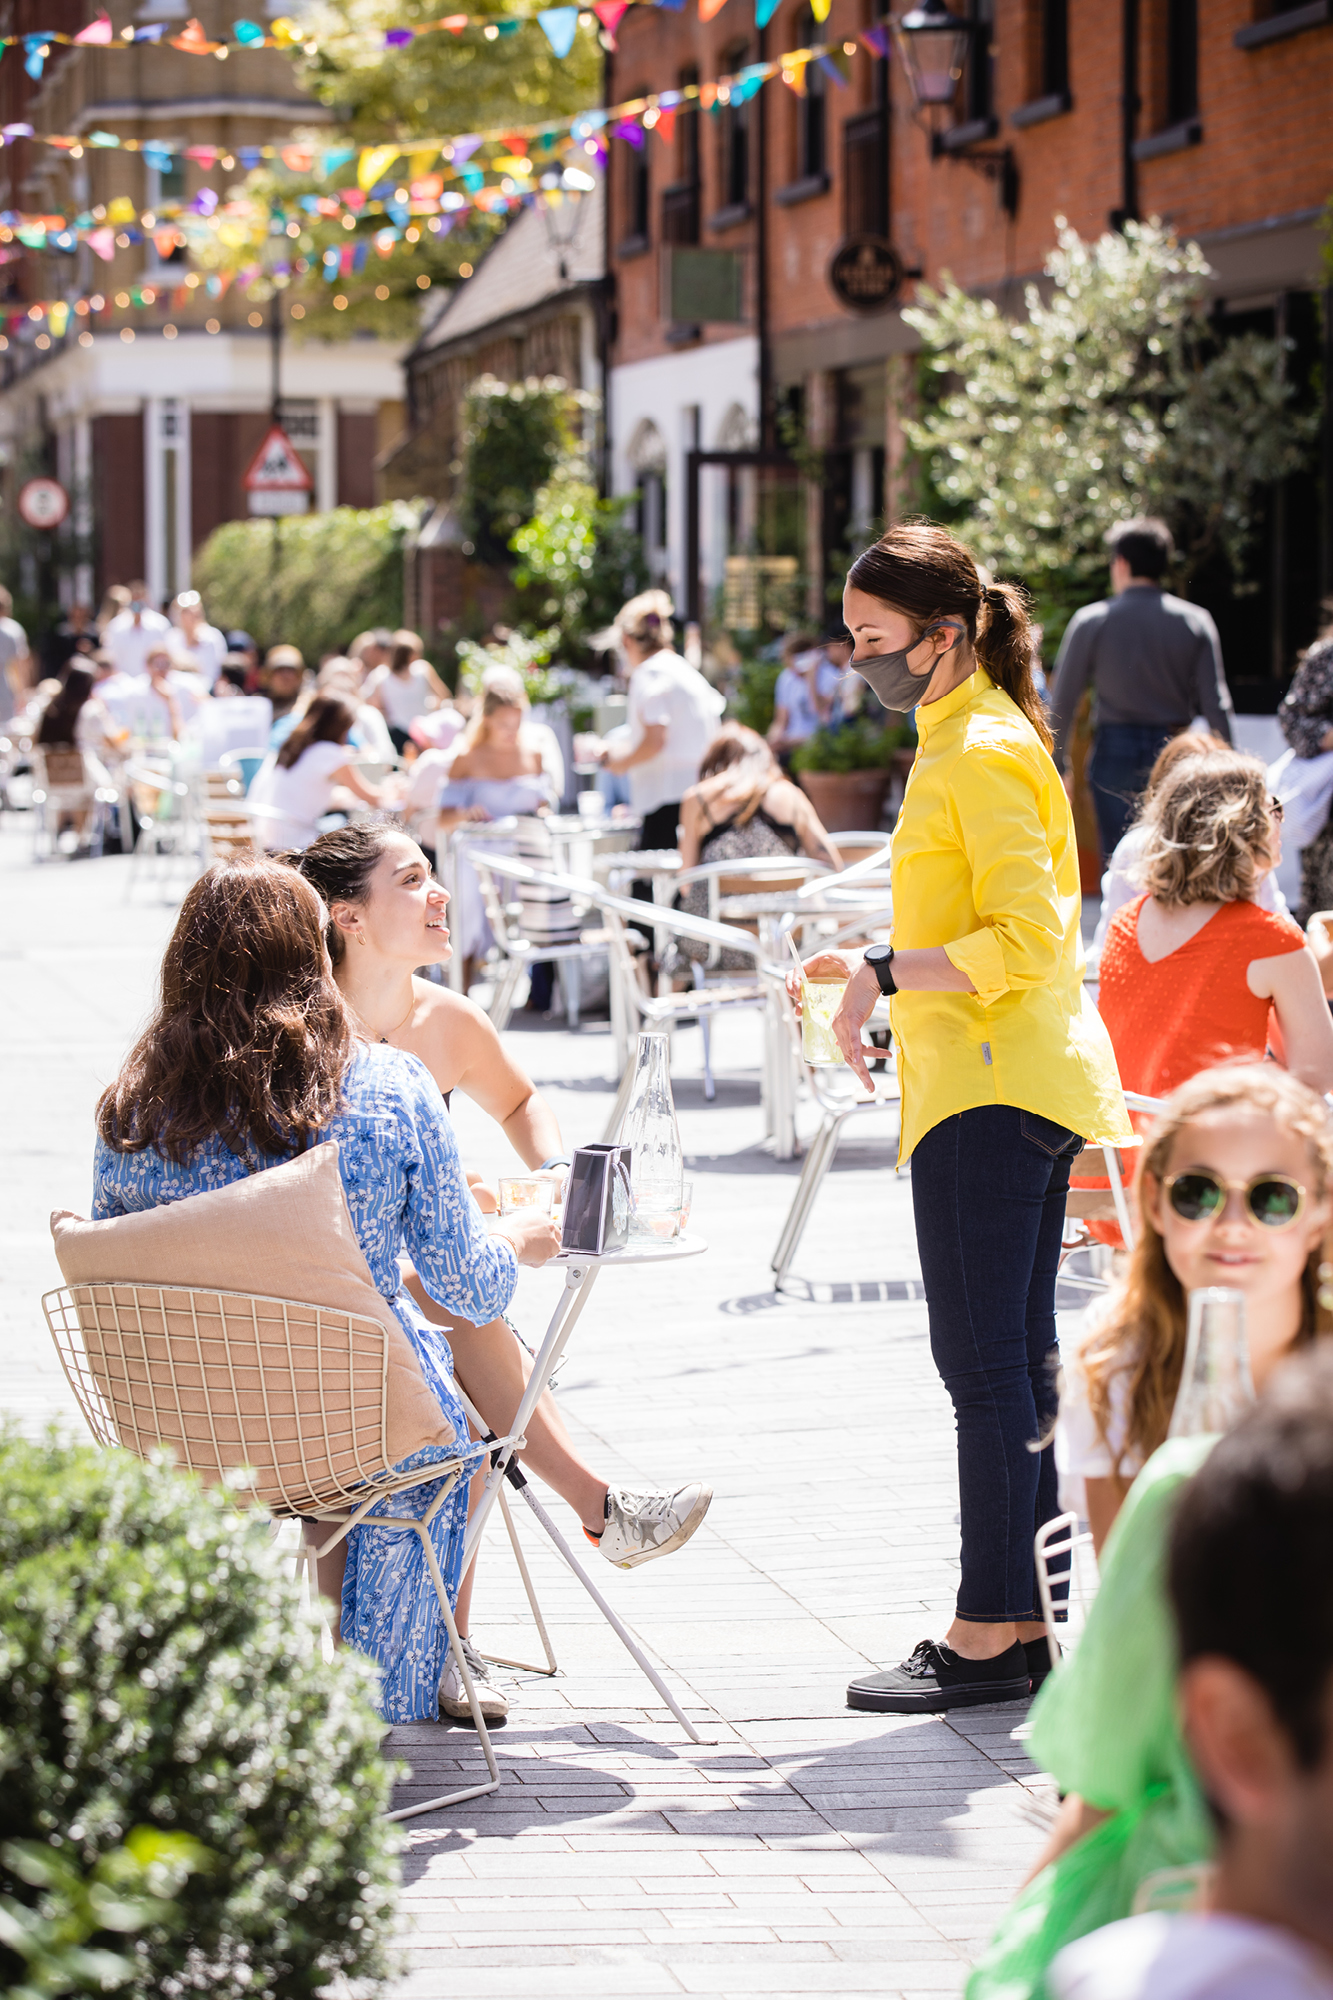 Cadogan's visionary management of the area means Chelsea is now a prime destination for al fresco dining